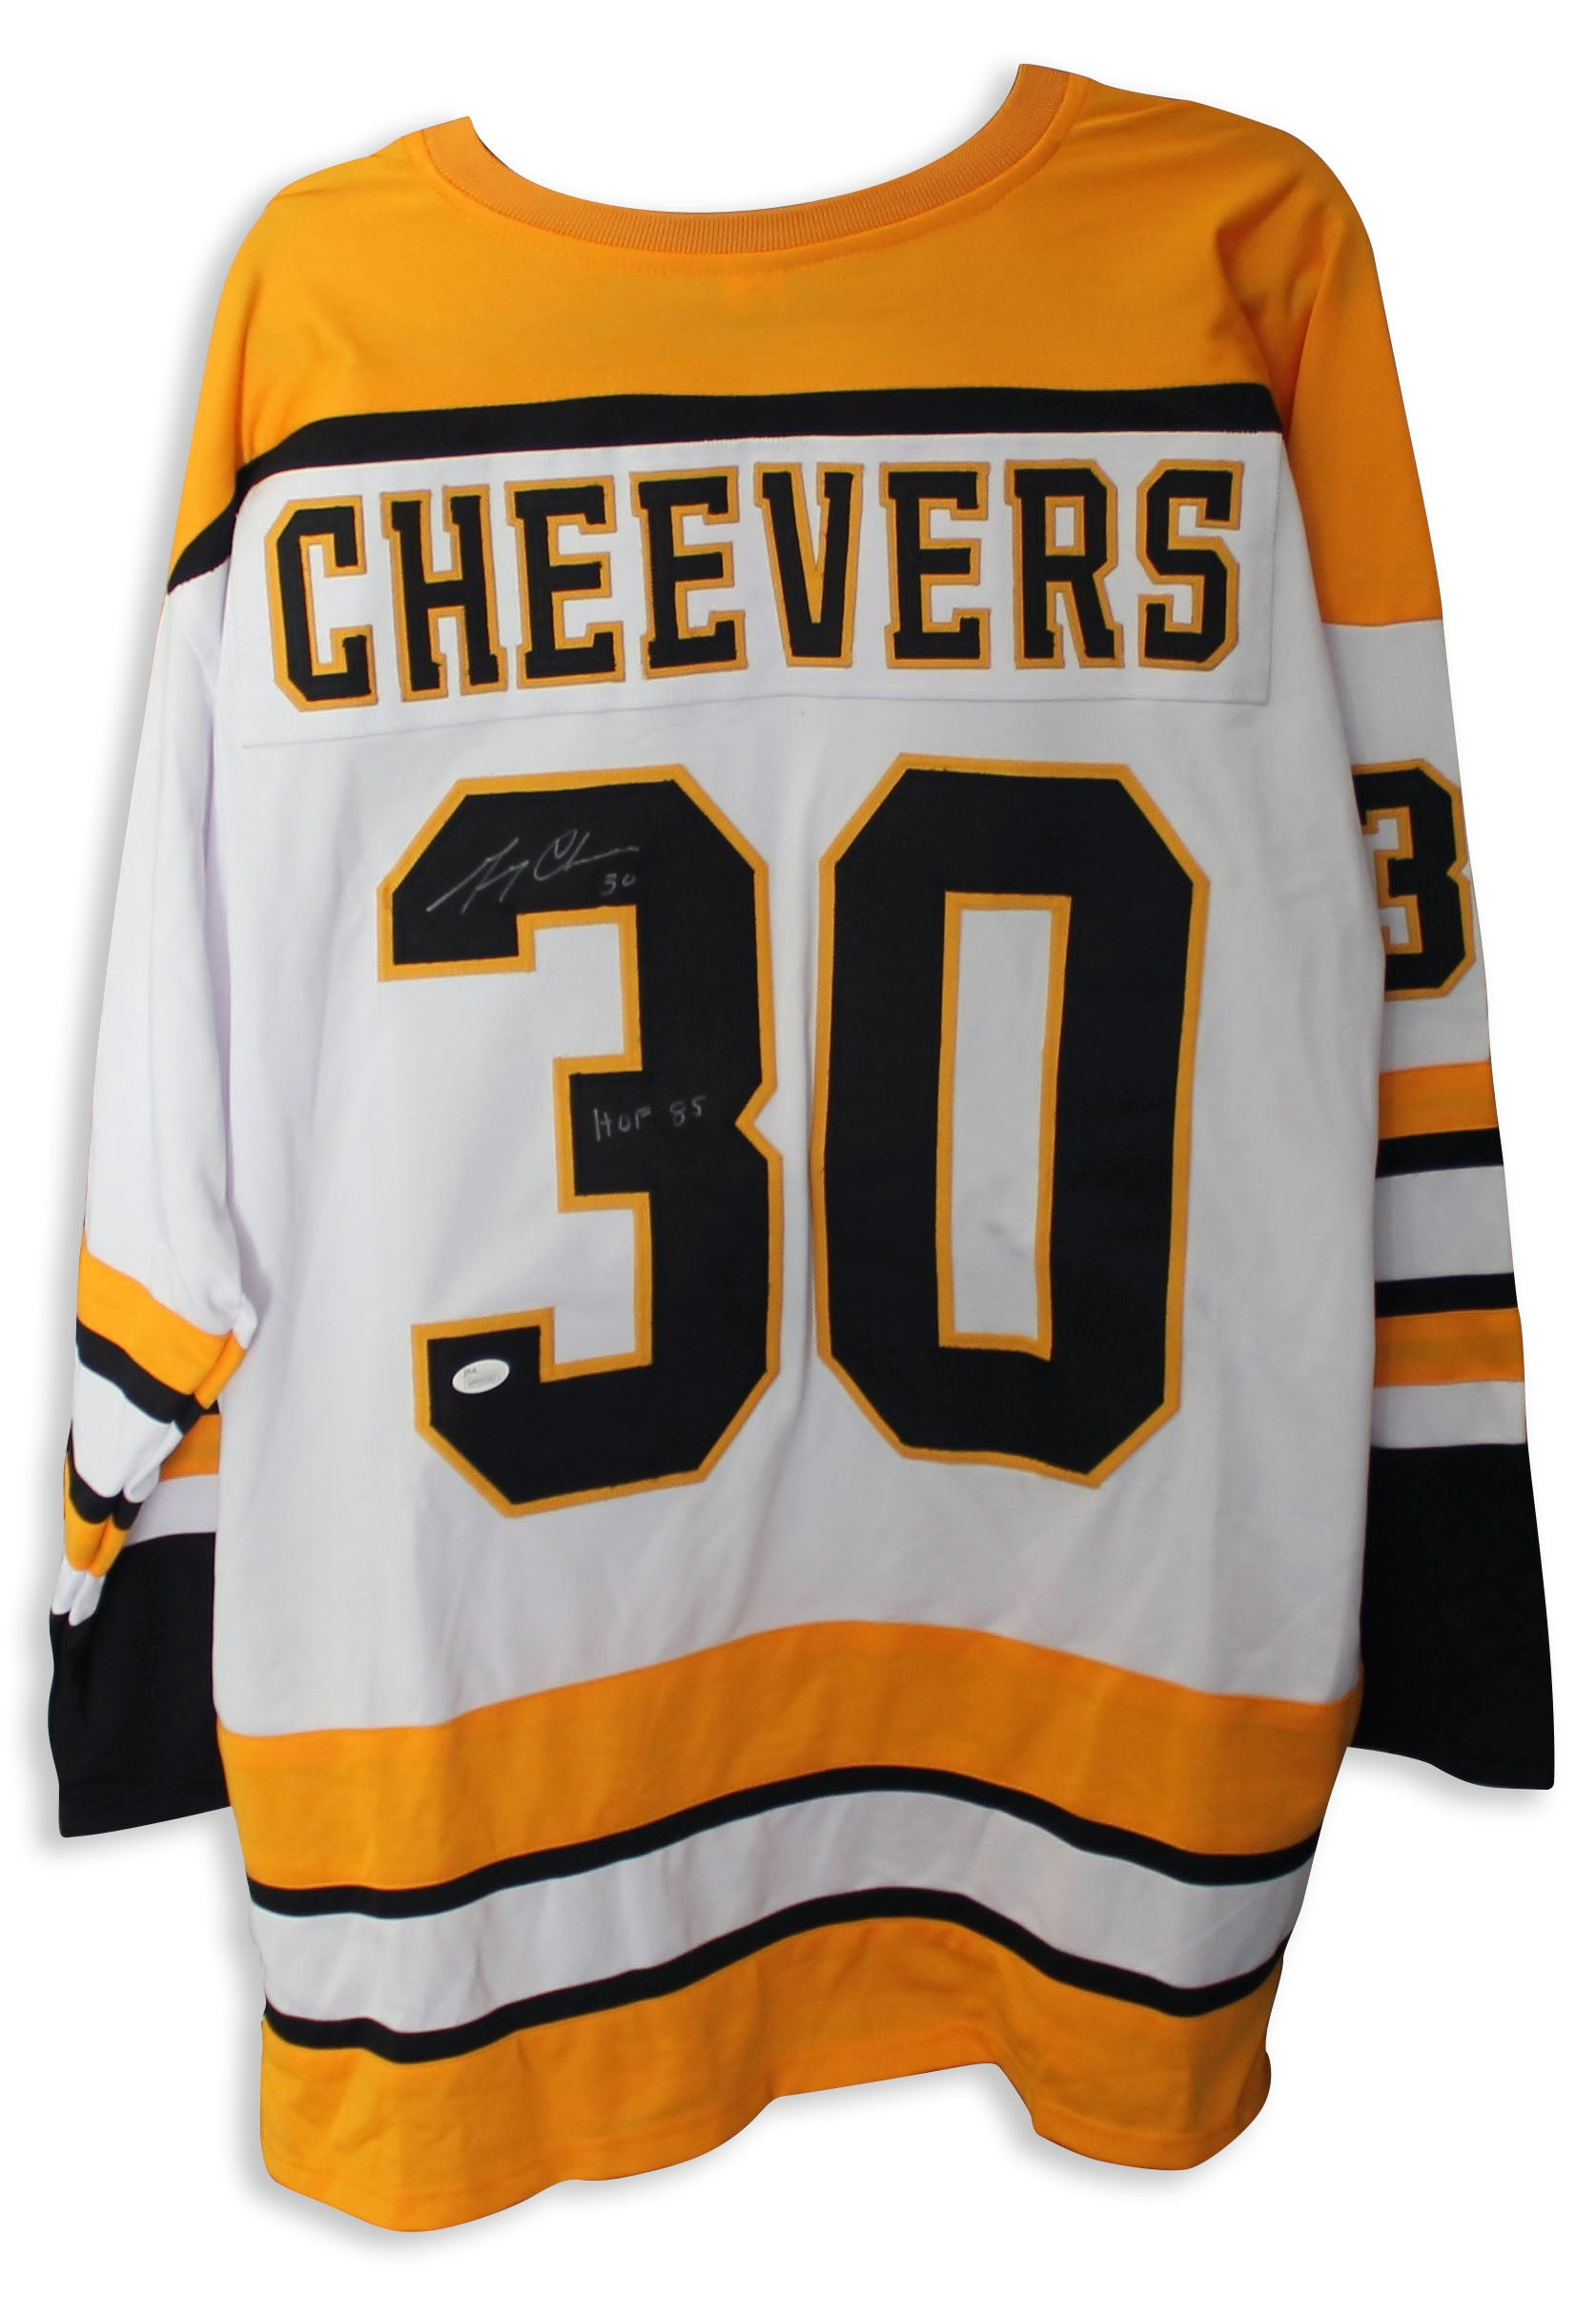 watch ca8e8 924f3 Gerry Cheevers Boston Bruins Autographed White Jersey Inscribed